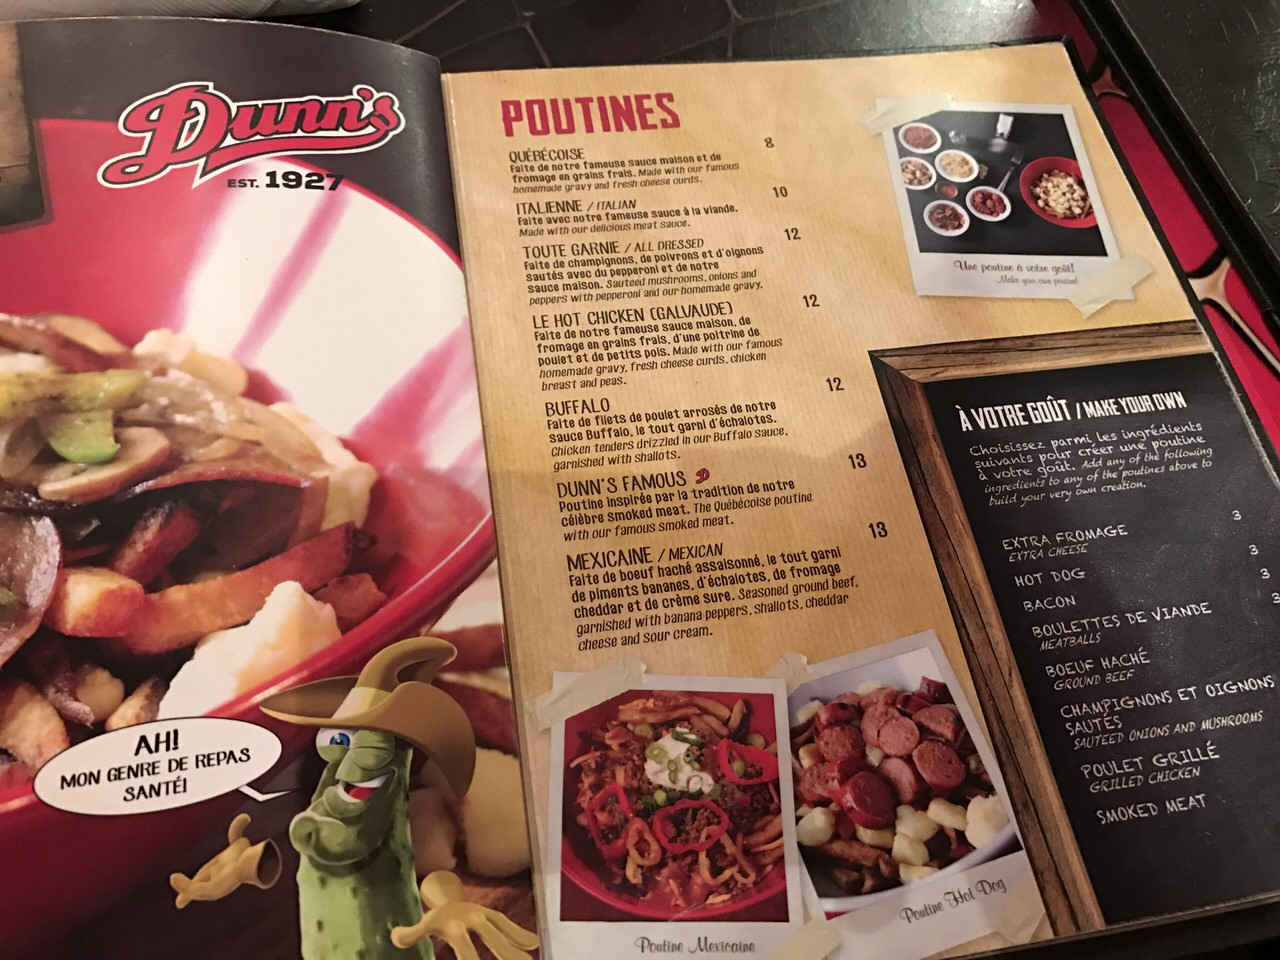 Dunns famous smoked poke 9890